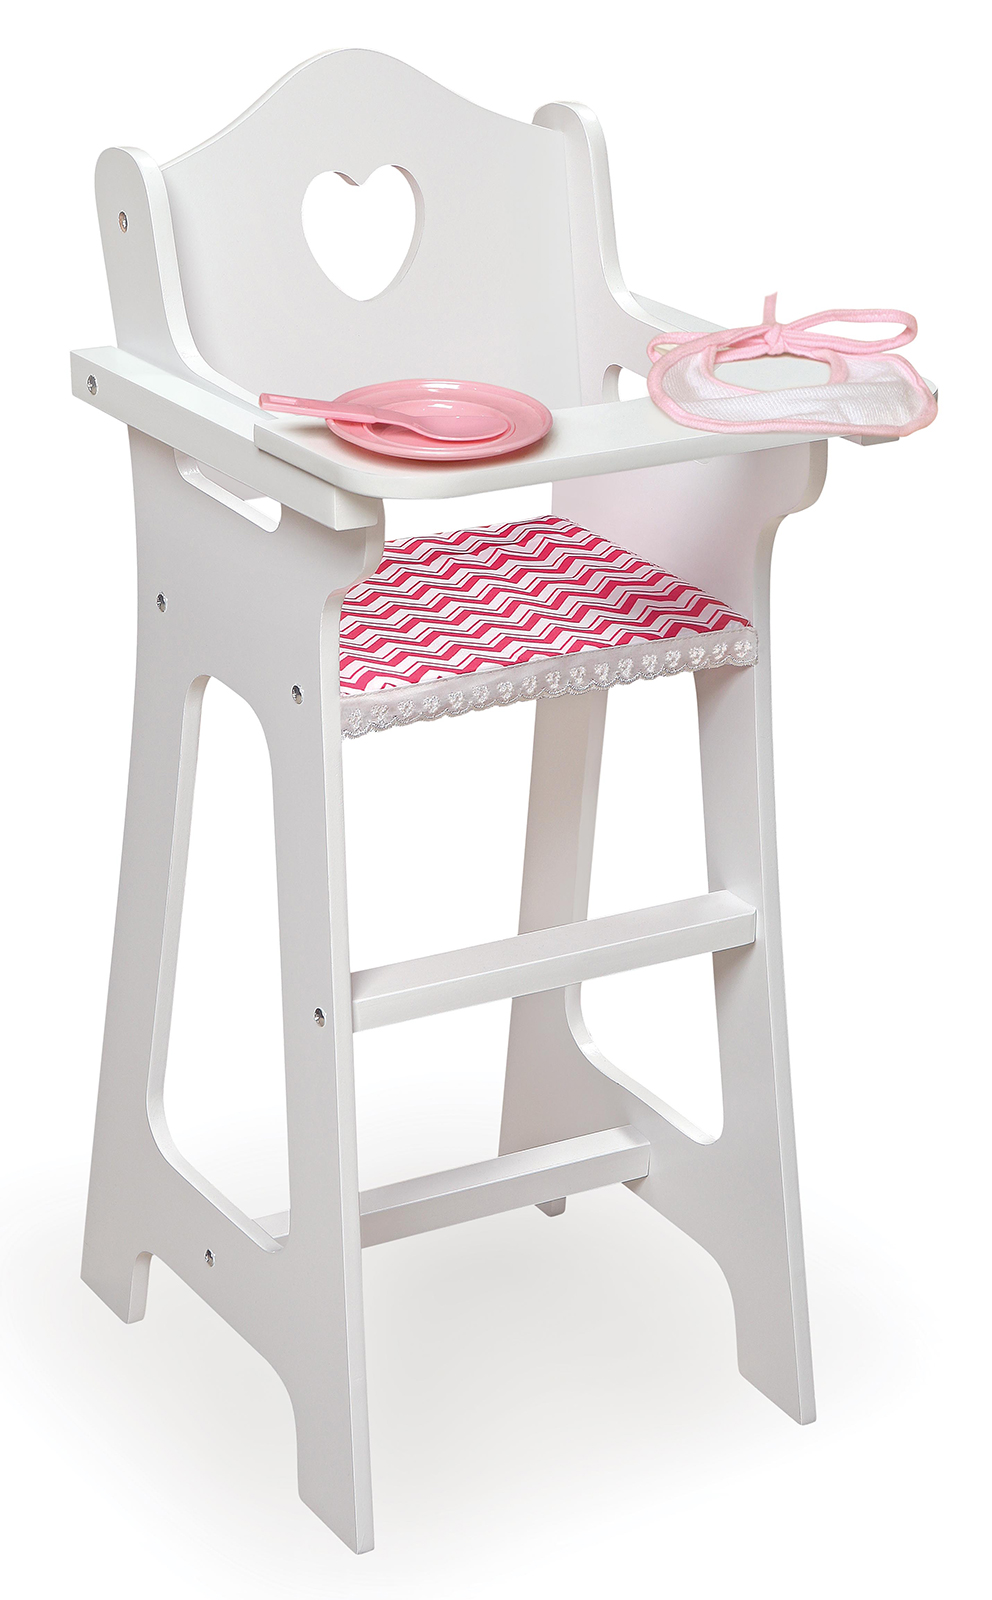 Badger Basket Doll High Chair With Plate, Bib, And Spoon   Chevron